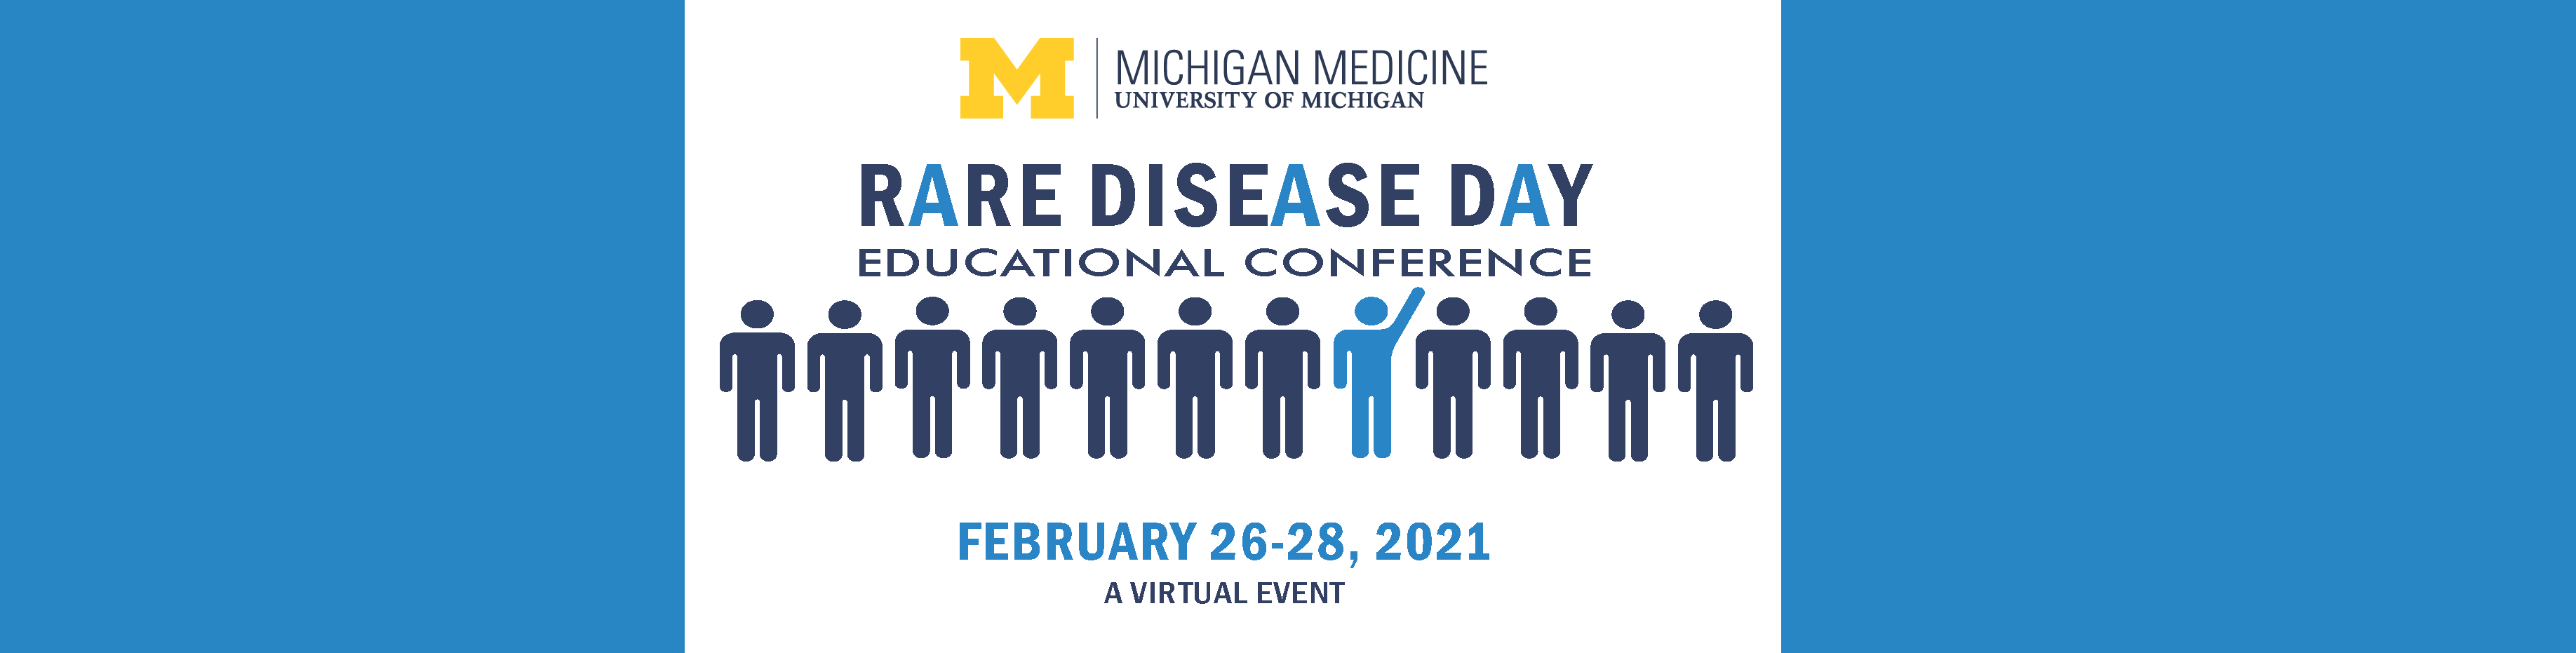 Rare Disease Day Educational Conference